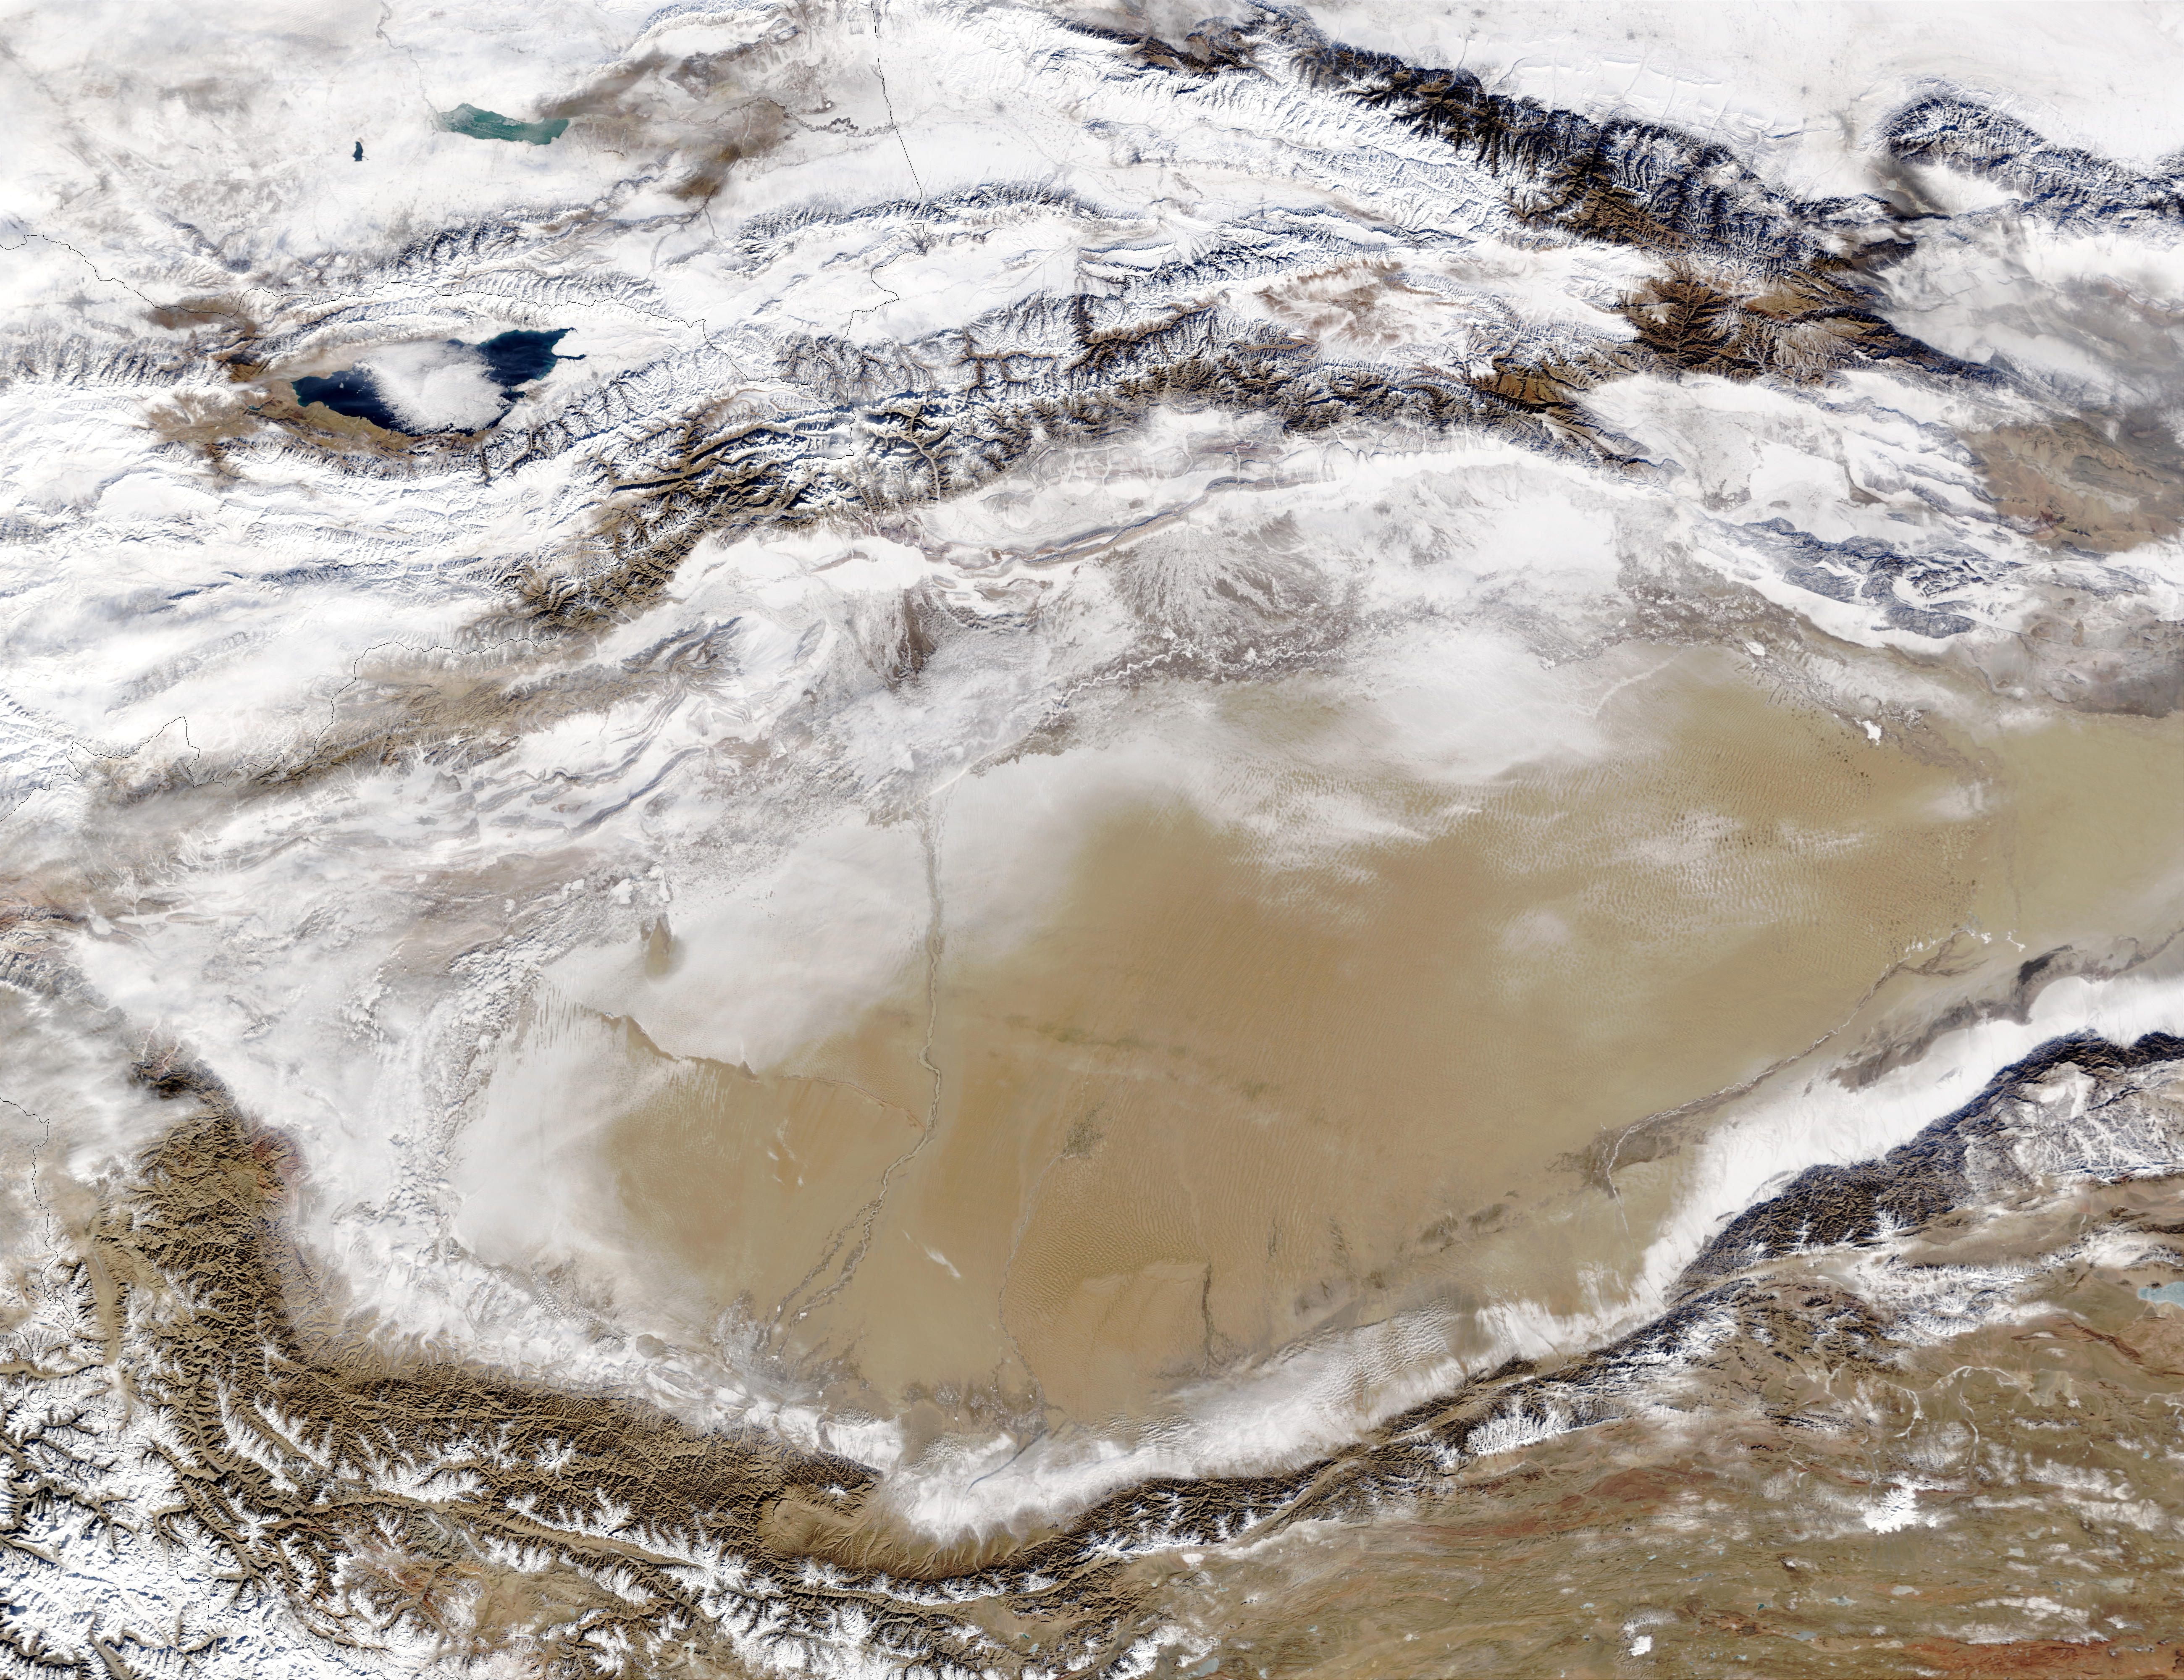 Snow in Taklimakan Desert, Western China